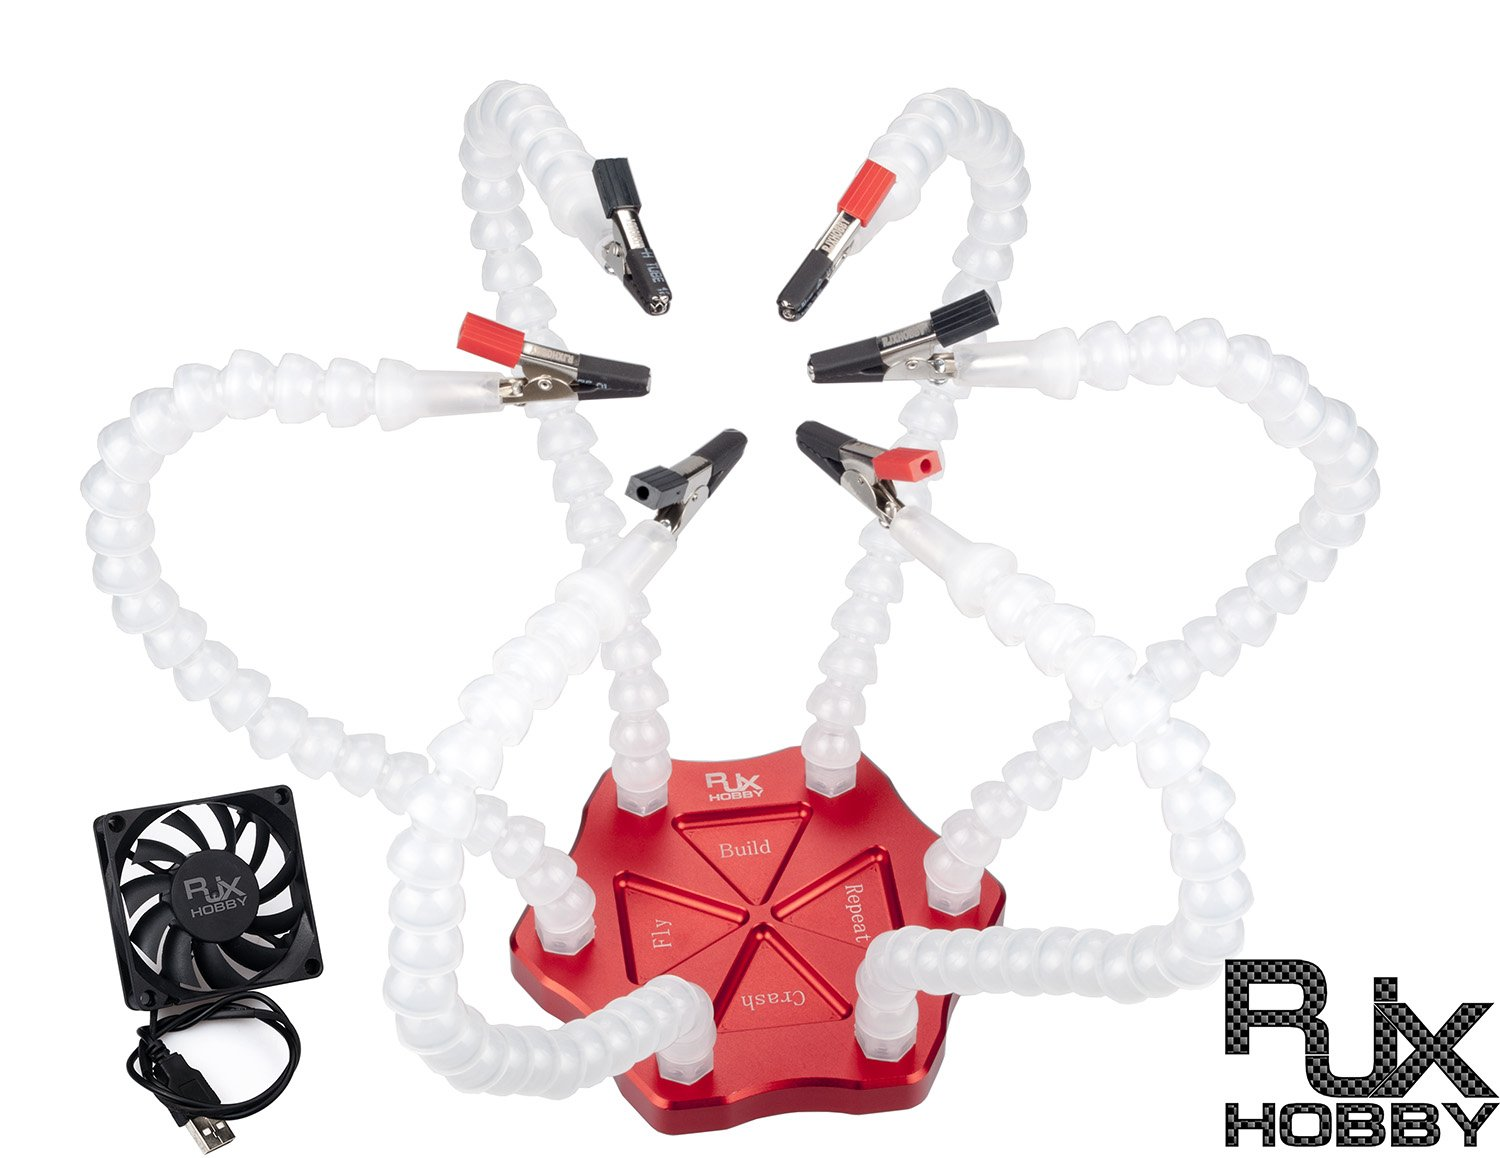 RJX Soldering Helping Hands - Third Hand Solder Station Aid Tool with 6 Flexible Arms, USB Fan & Alligator Clips - Hobby Vise Circuit (Red Aluminum Base + White Arms)